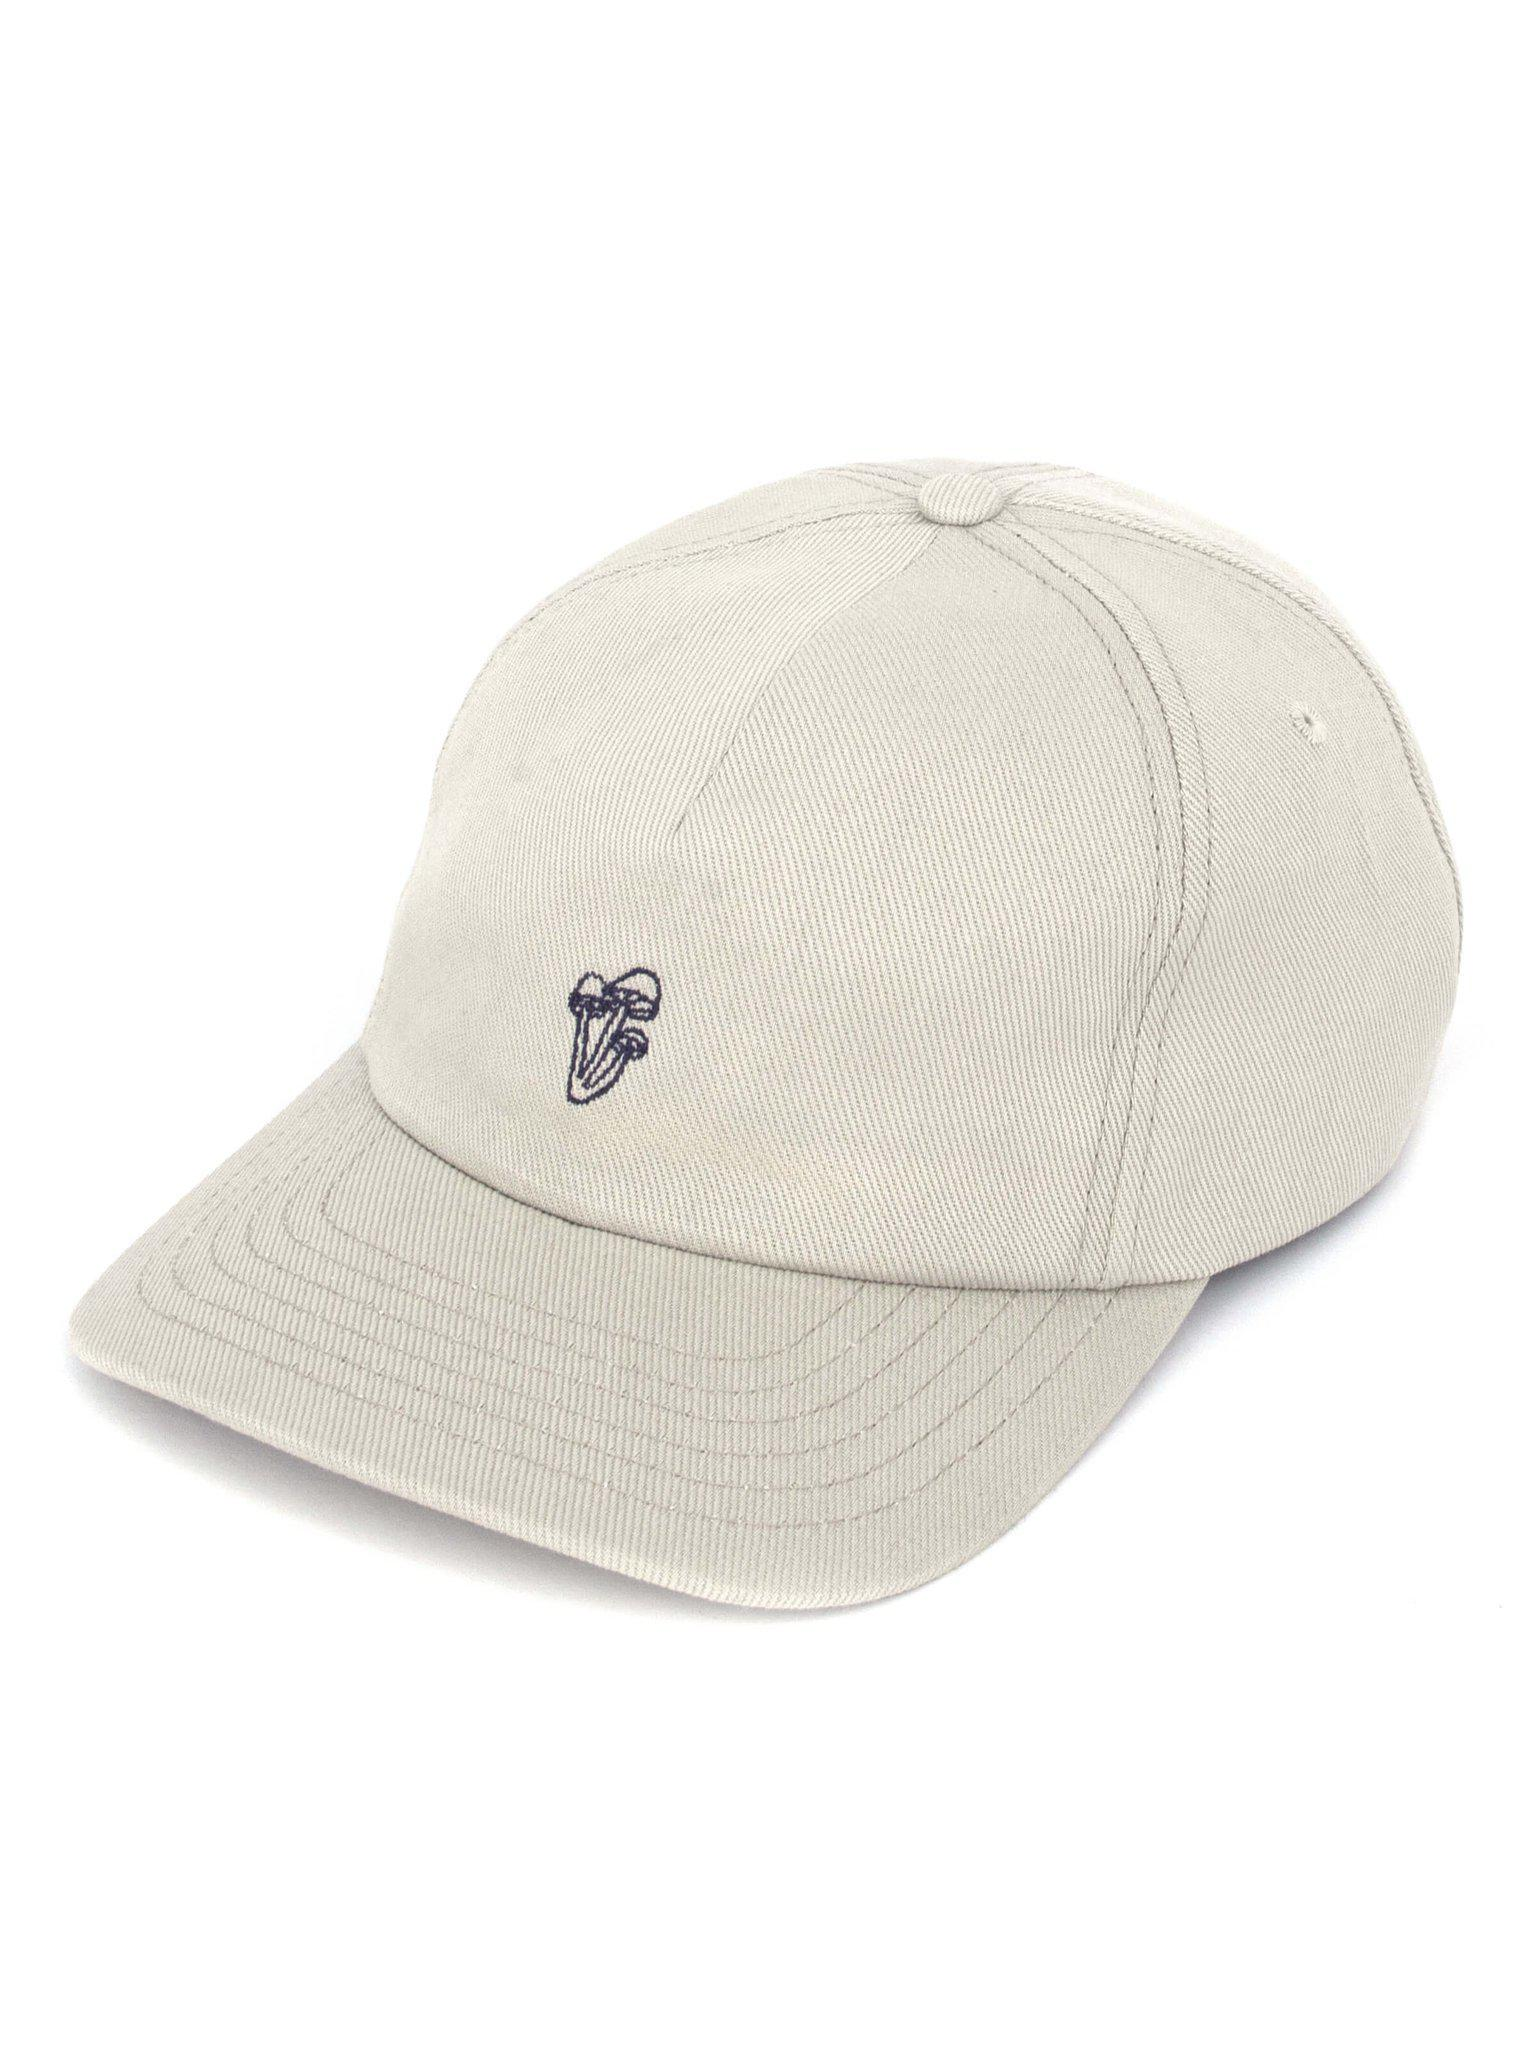 3790f0a163d Lyst - Mollusk Mushroom Polo Hat in White for Men